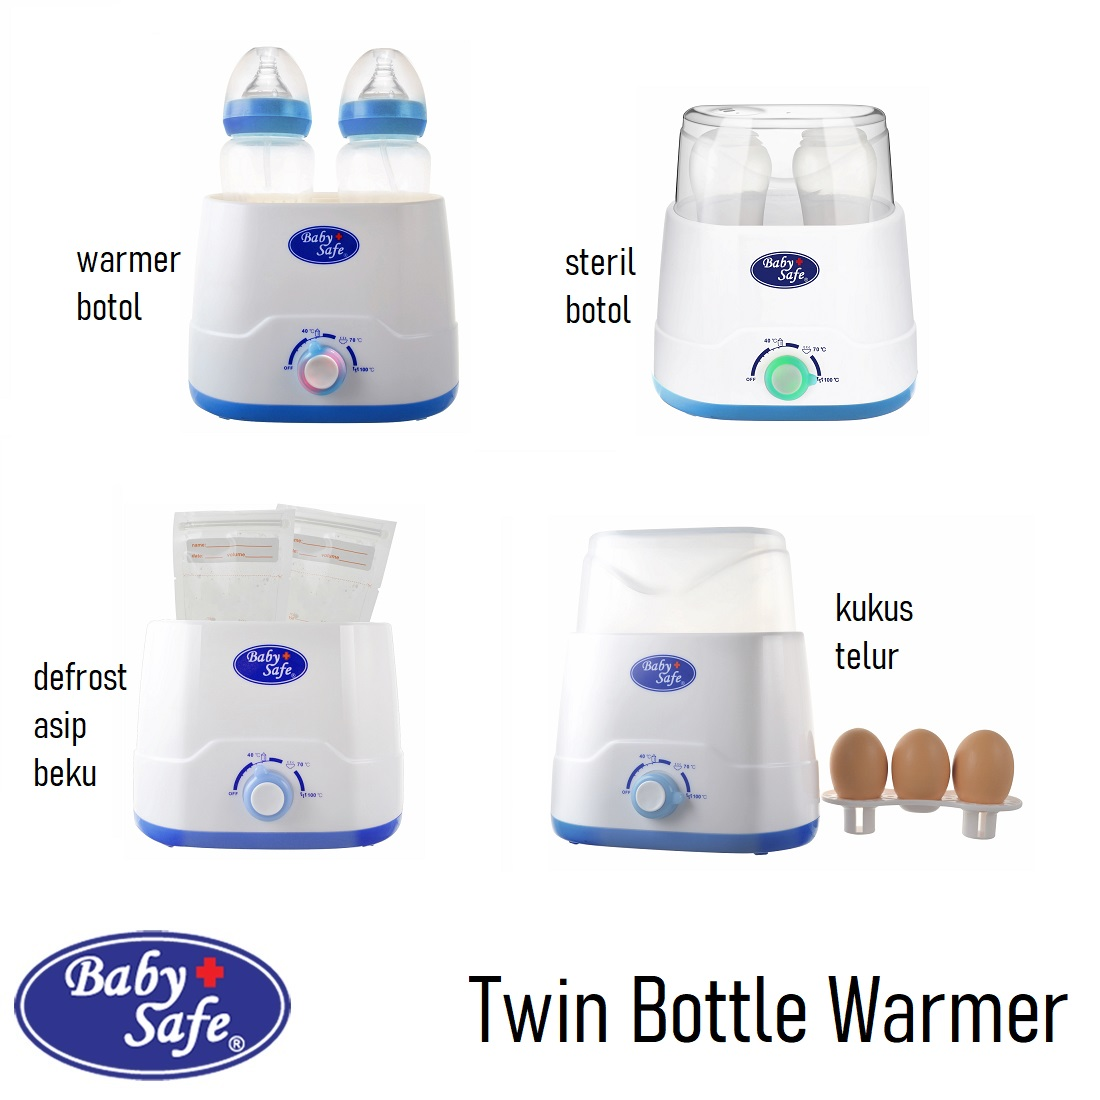 Baby Safe Twin Bottle Warmer